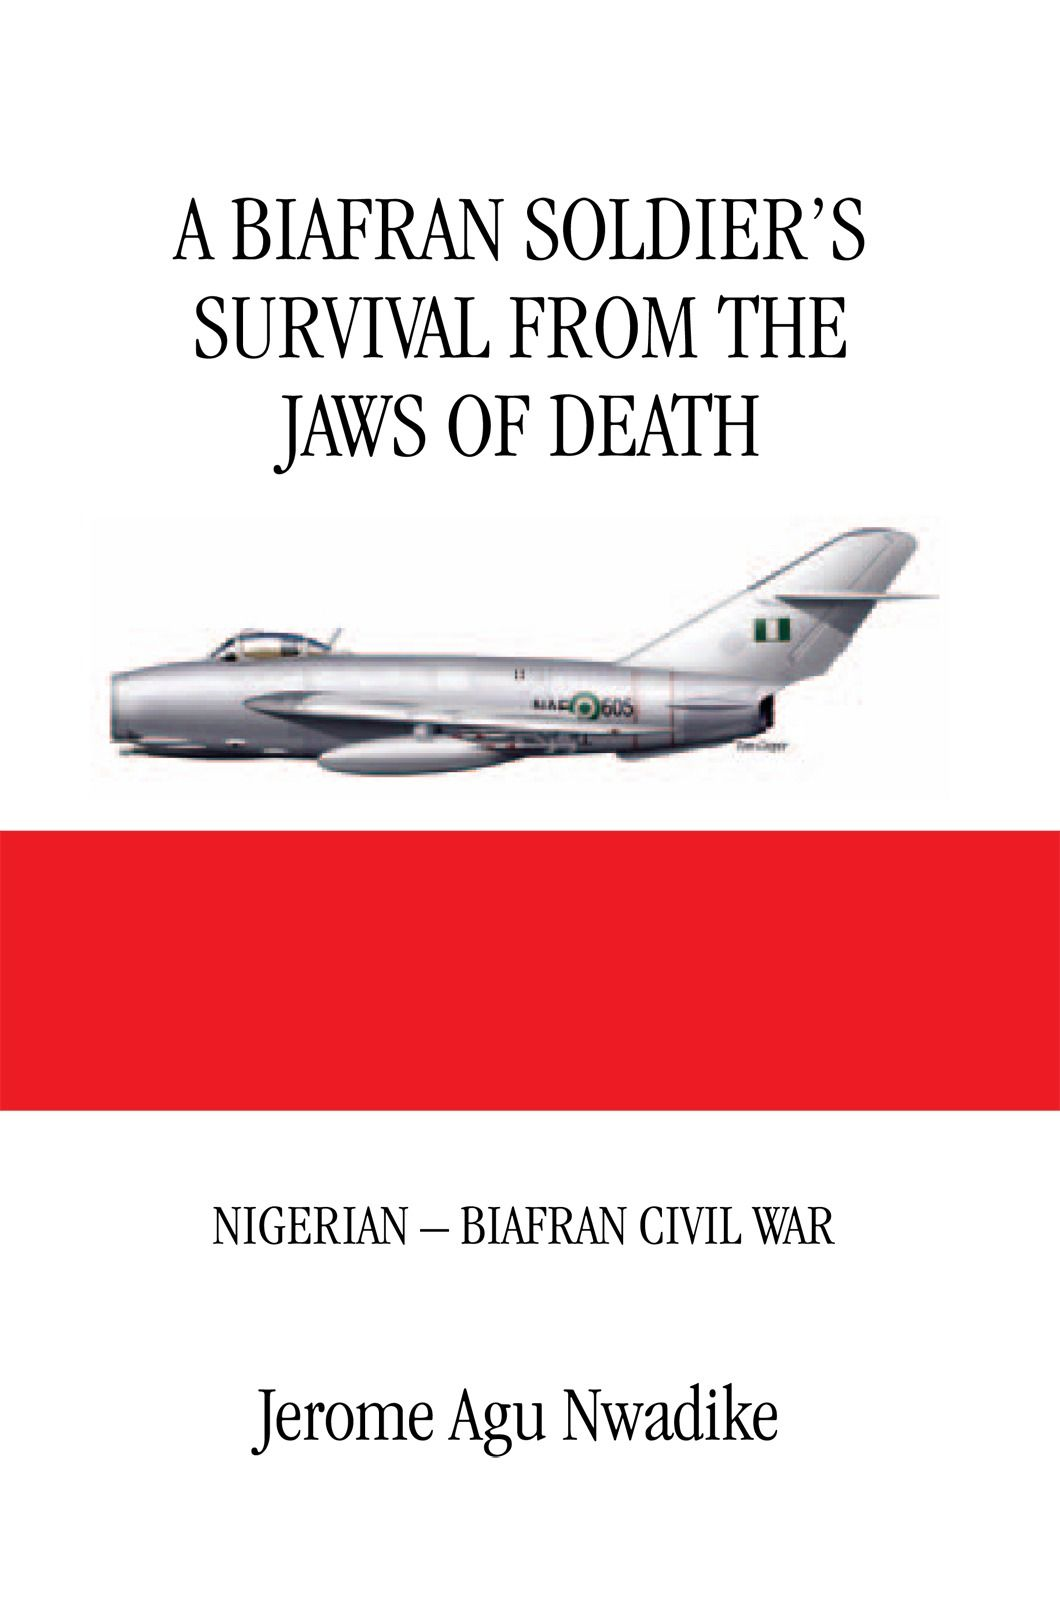 A BIAFRAN SOLDIER'S SURVIVAL FROM THE JAWS OF DEATH